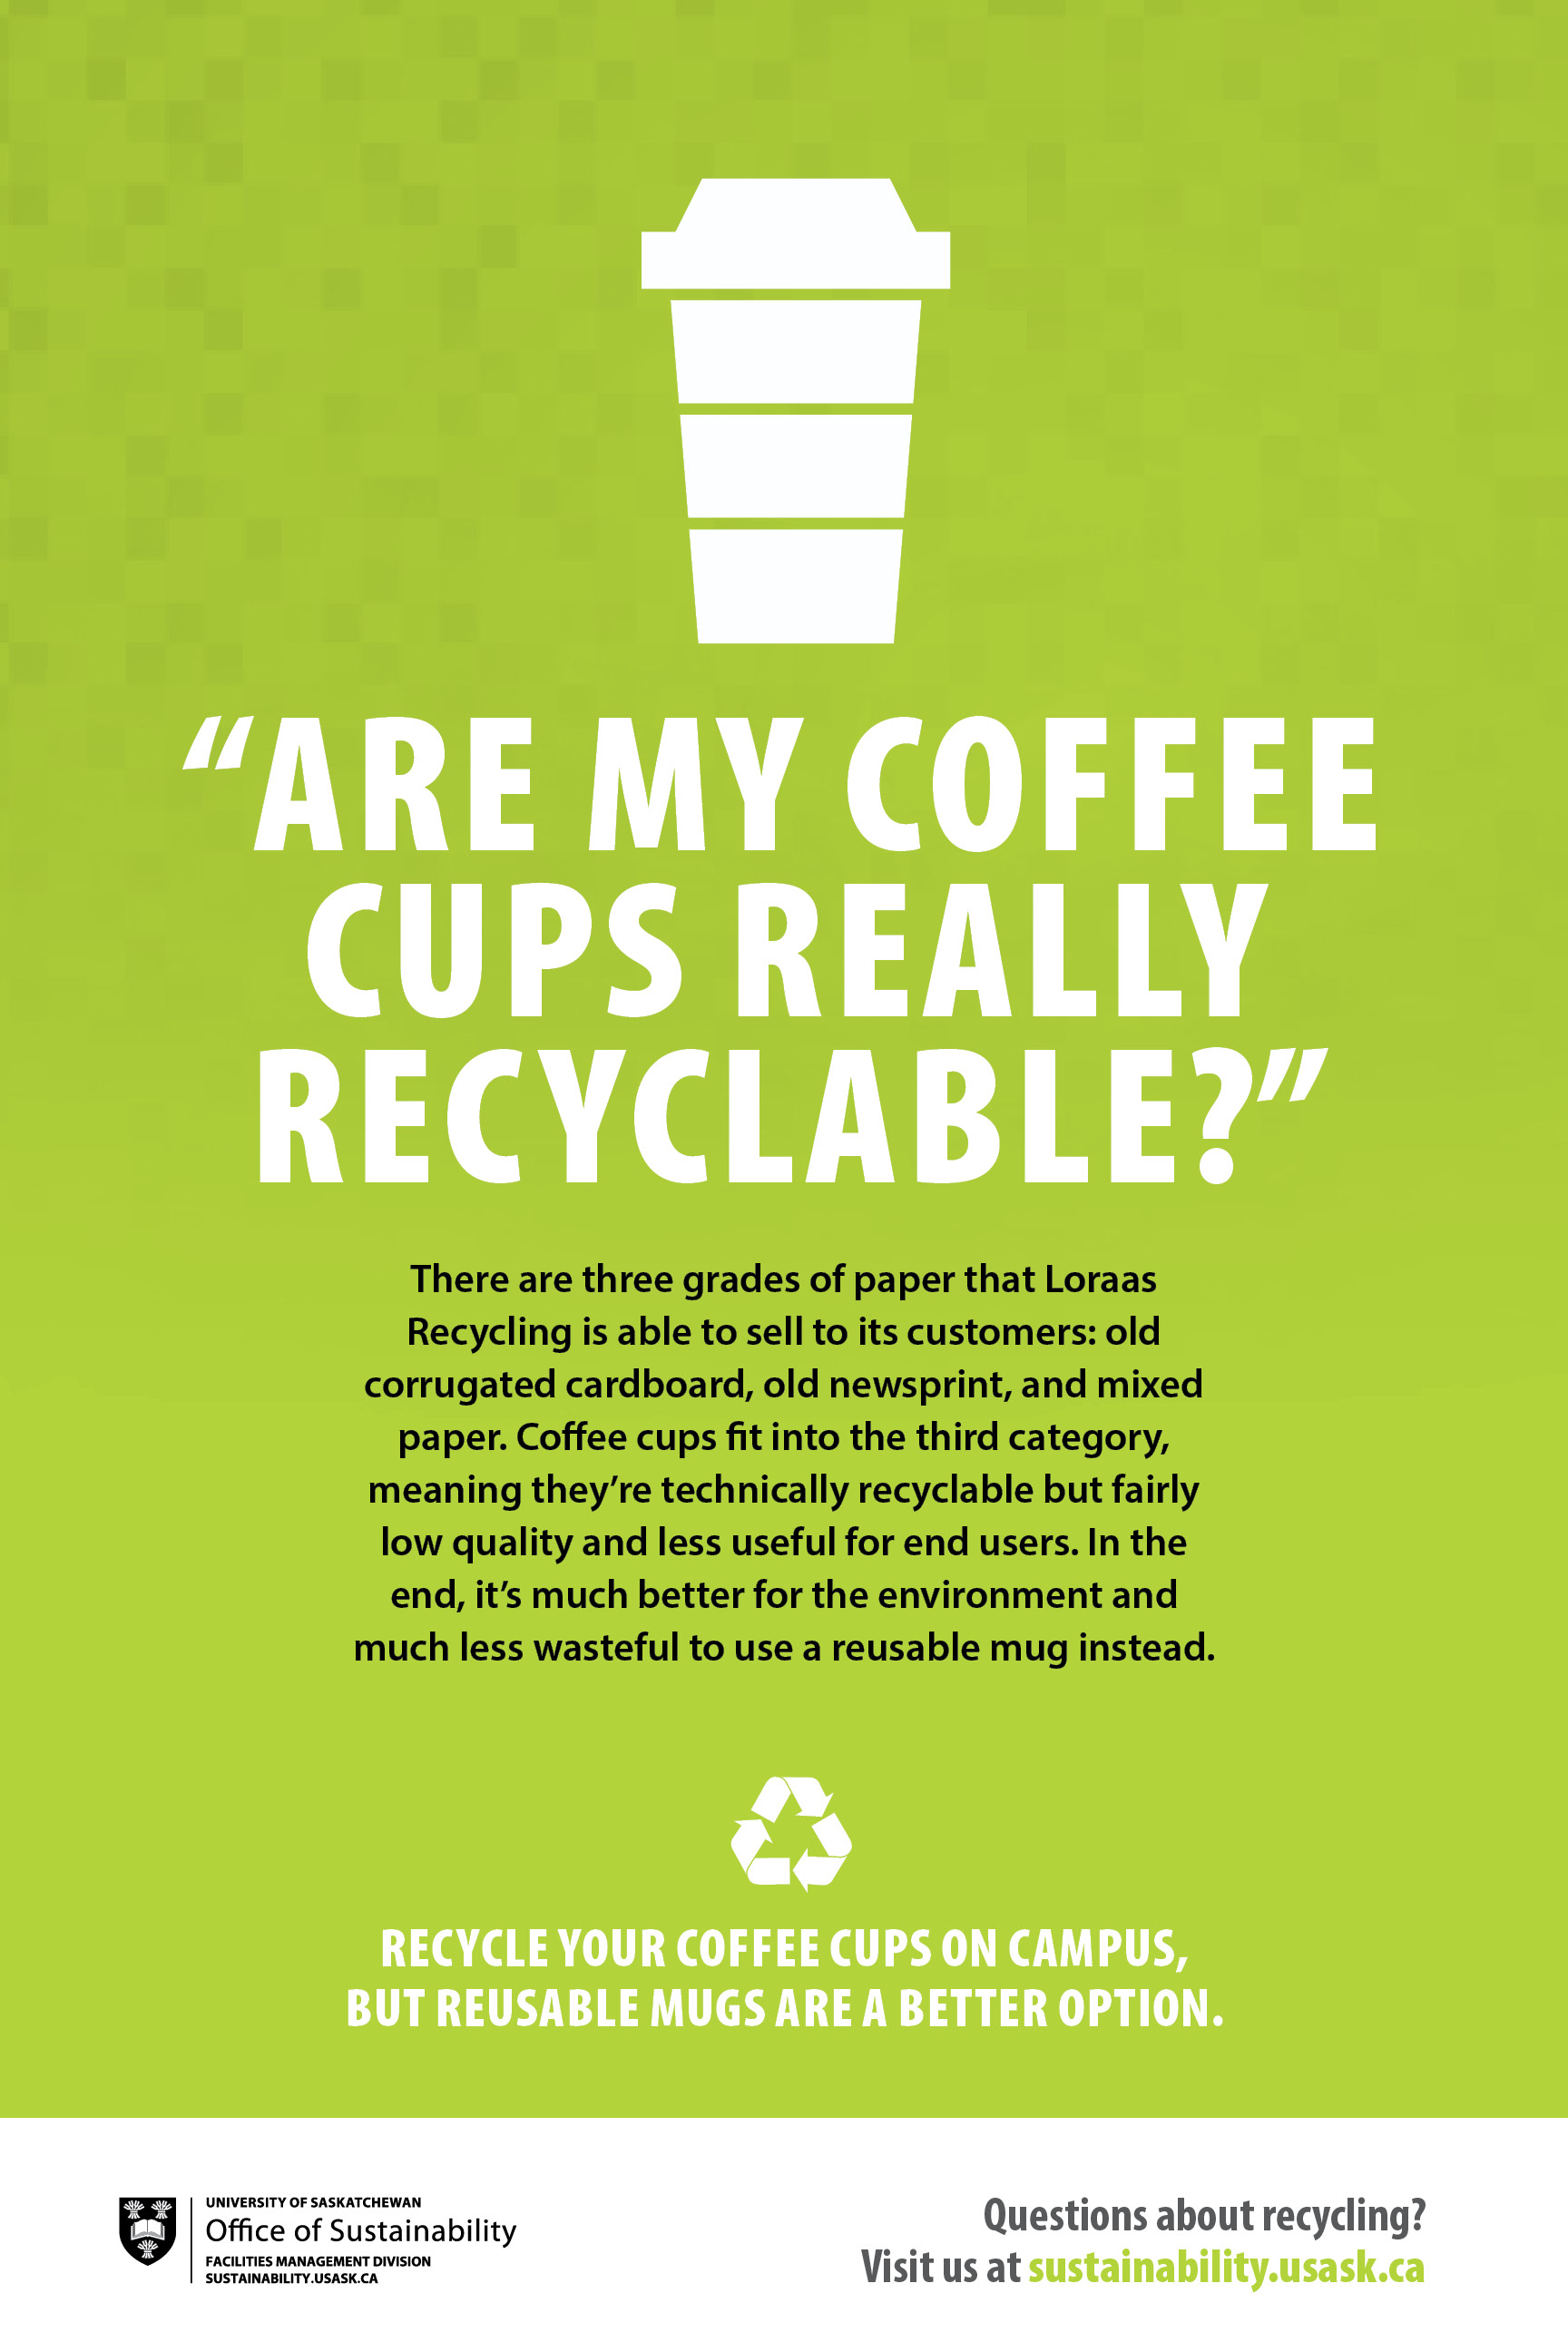 One of the Office of Sustainability's educational recycling posters depicting proper coffee cup recycling.